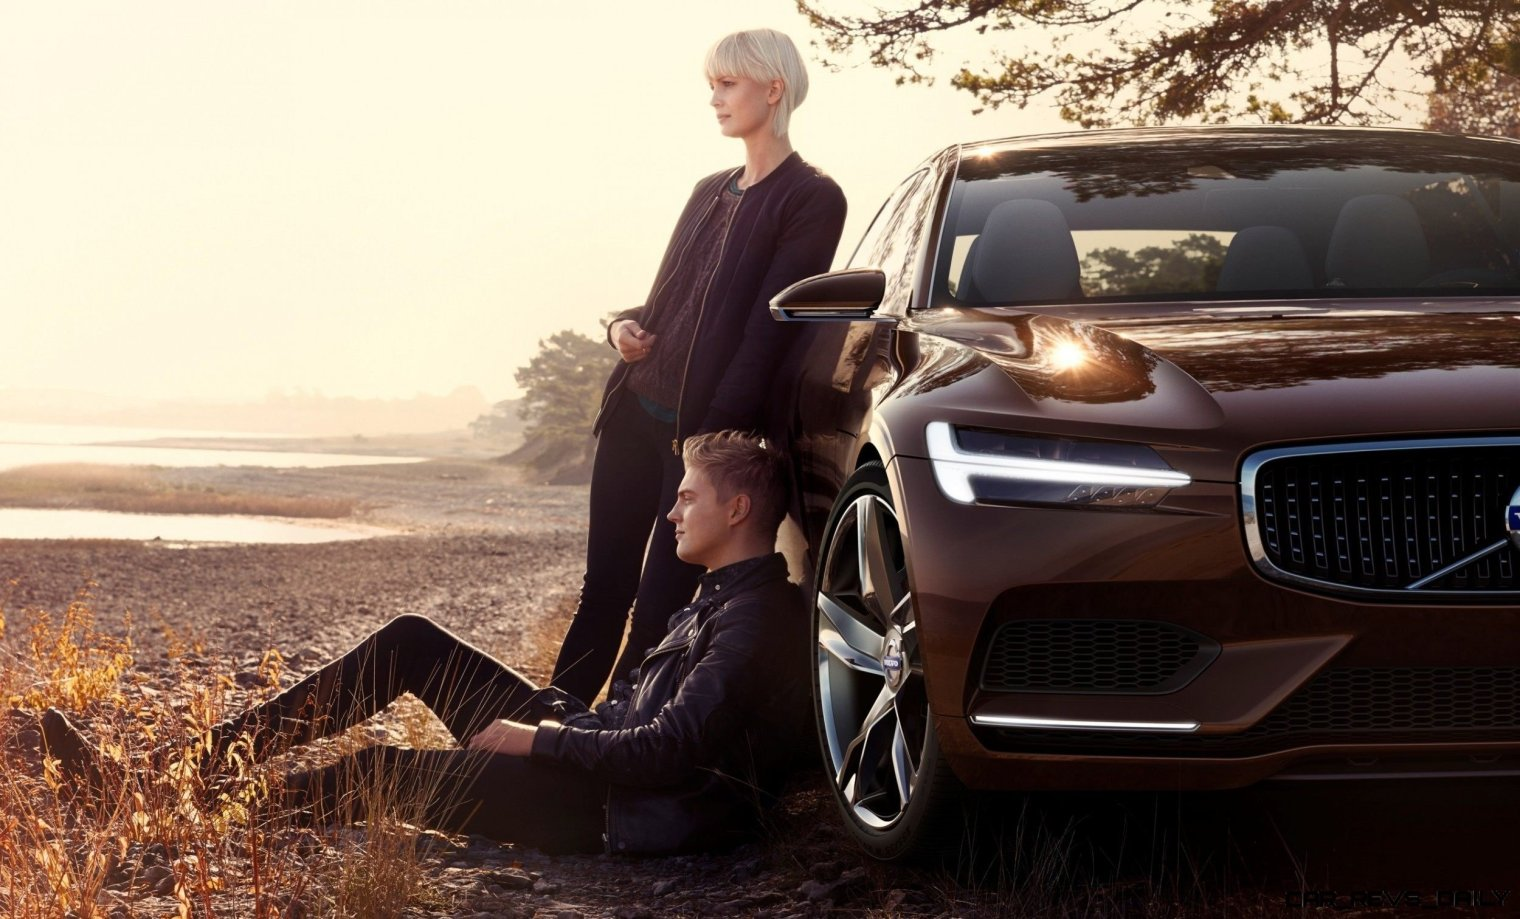 Concept Estate Confirms It! Volvo's New Design Lead Th. Ingenlath Should Be Sweden's Man of the Year 5